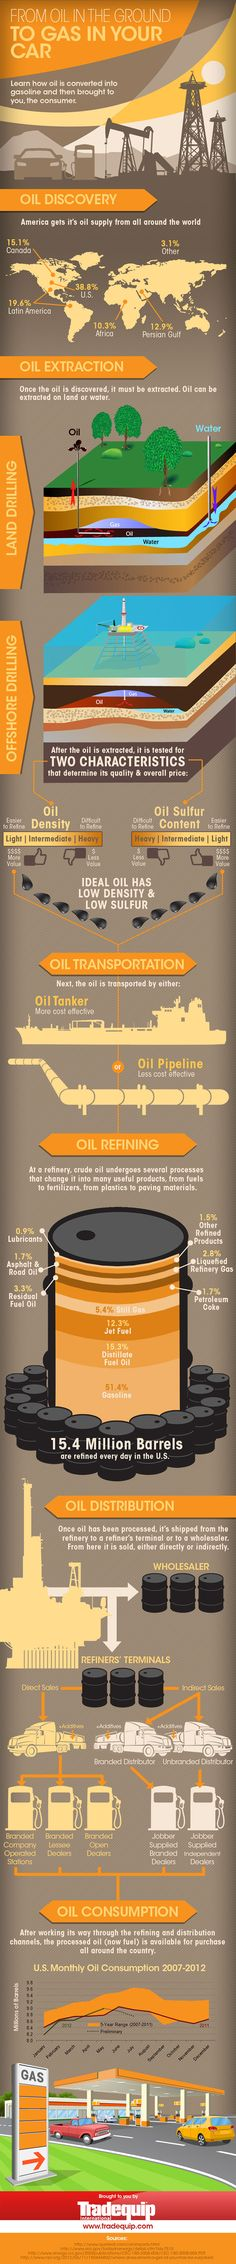 Have you ever wondered how oil in the ground becomes gas in your car gas tank? Well, youre in luck. In the infographic below, Tradequip shows all the